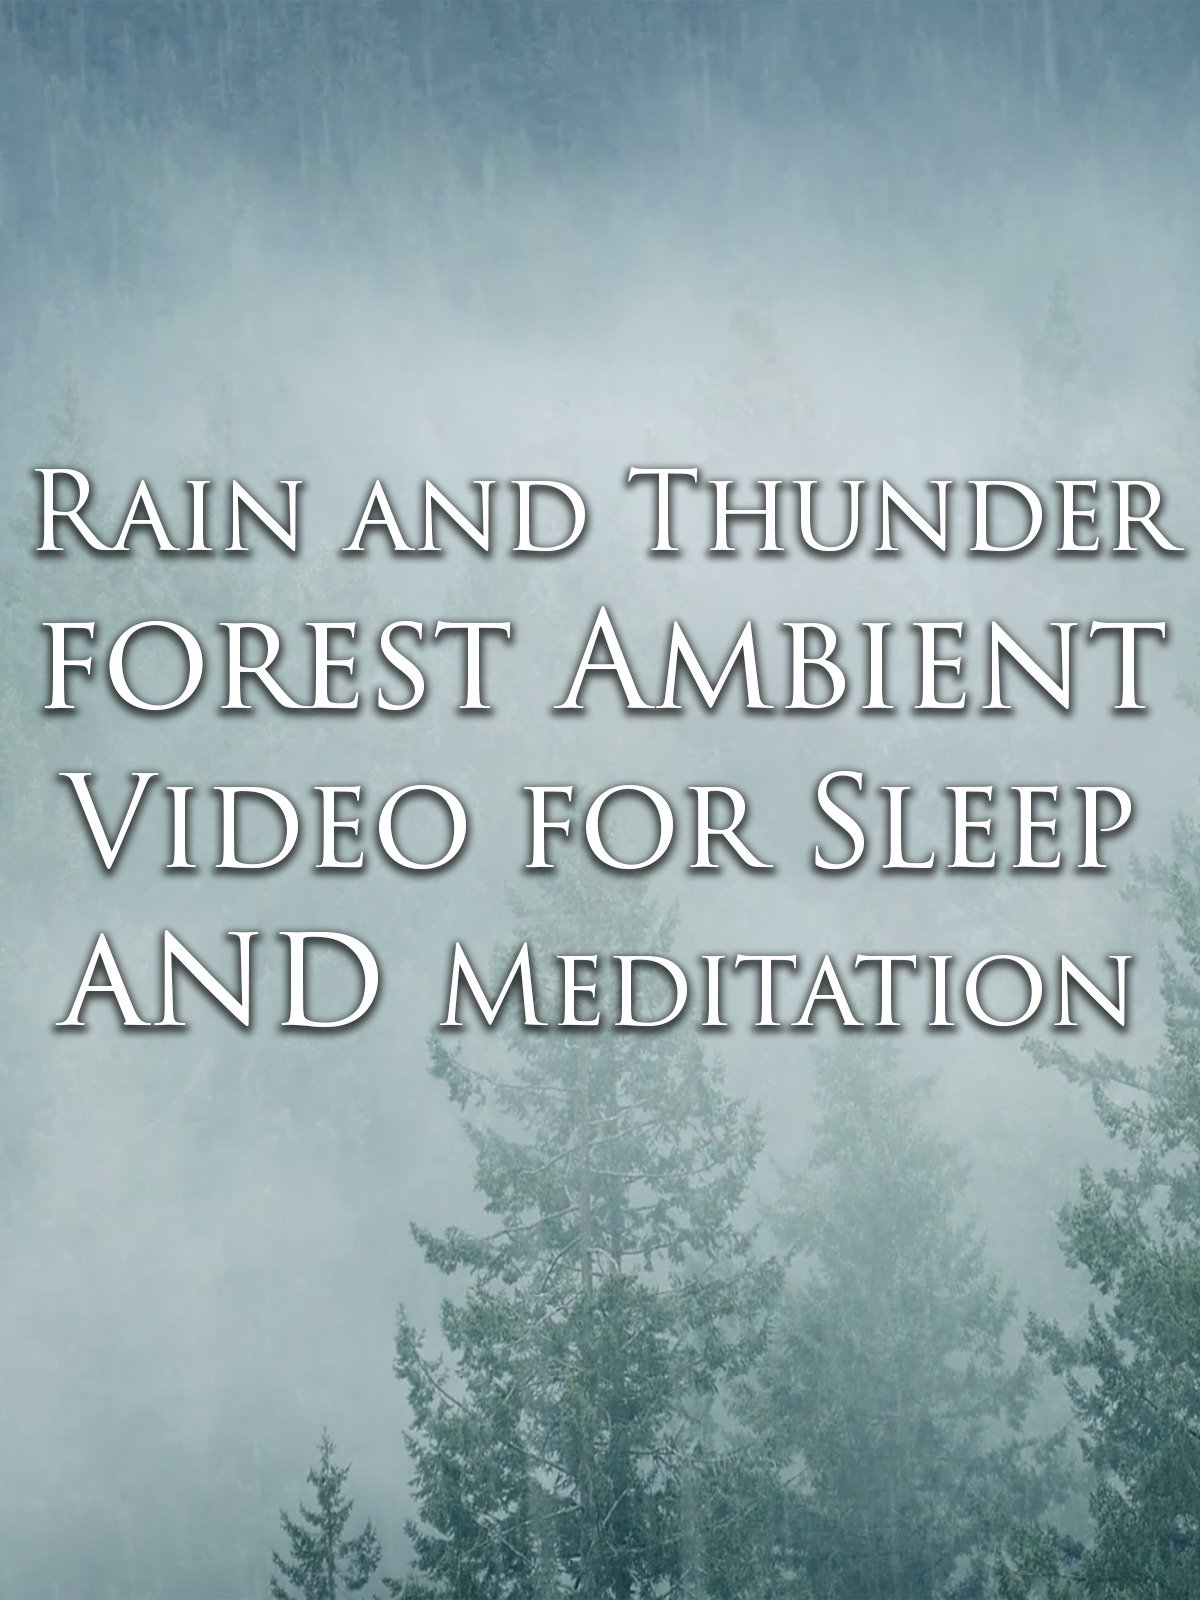 Rain and Thunder Forest Ambient Video for Sleep and Meditation